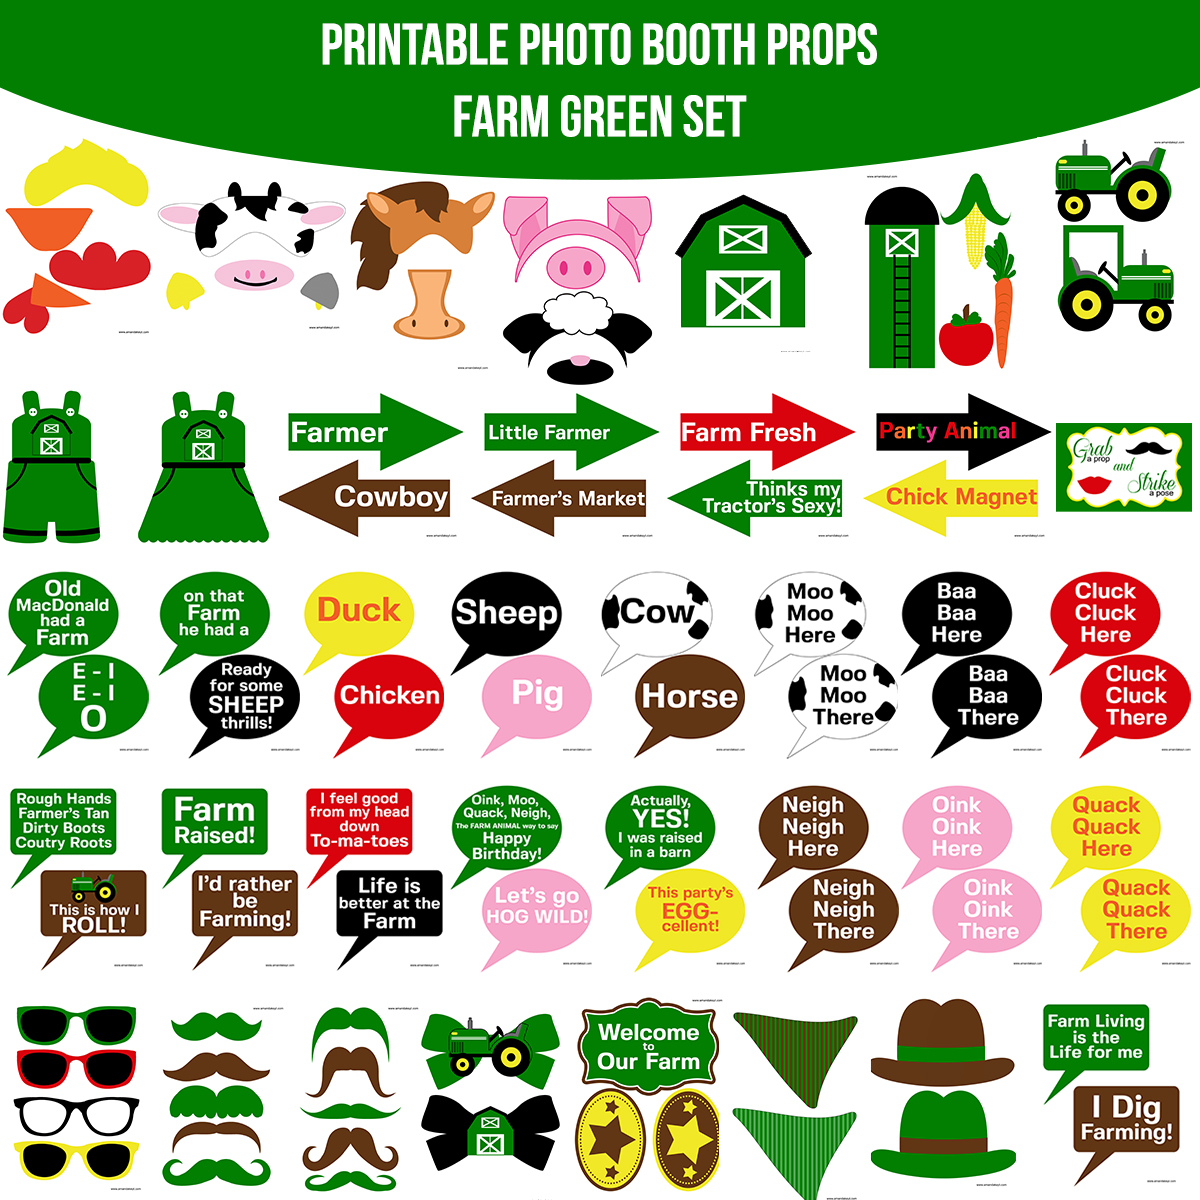 See the Set - To View The Whole Farm Green Printable Photo Booth Prop Set Click Here